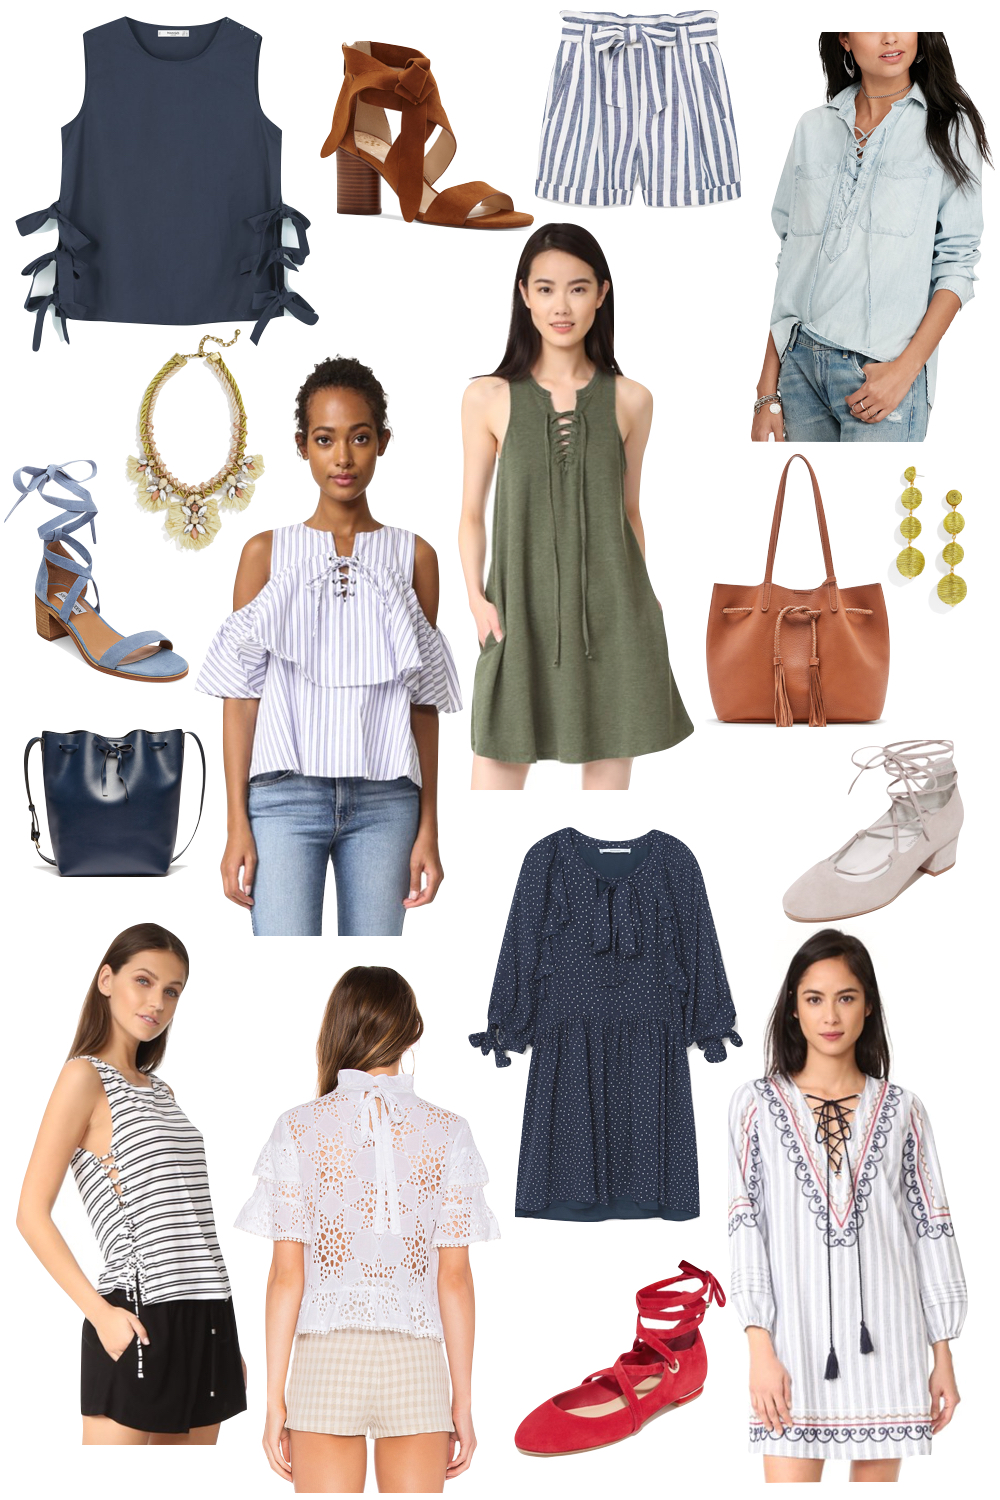 kelly's chic under $100 | all tied up | the stripe blog - affordable fashion